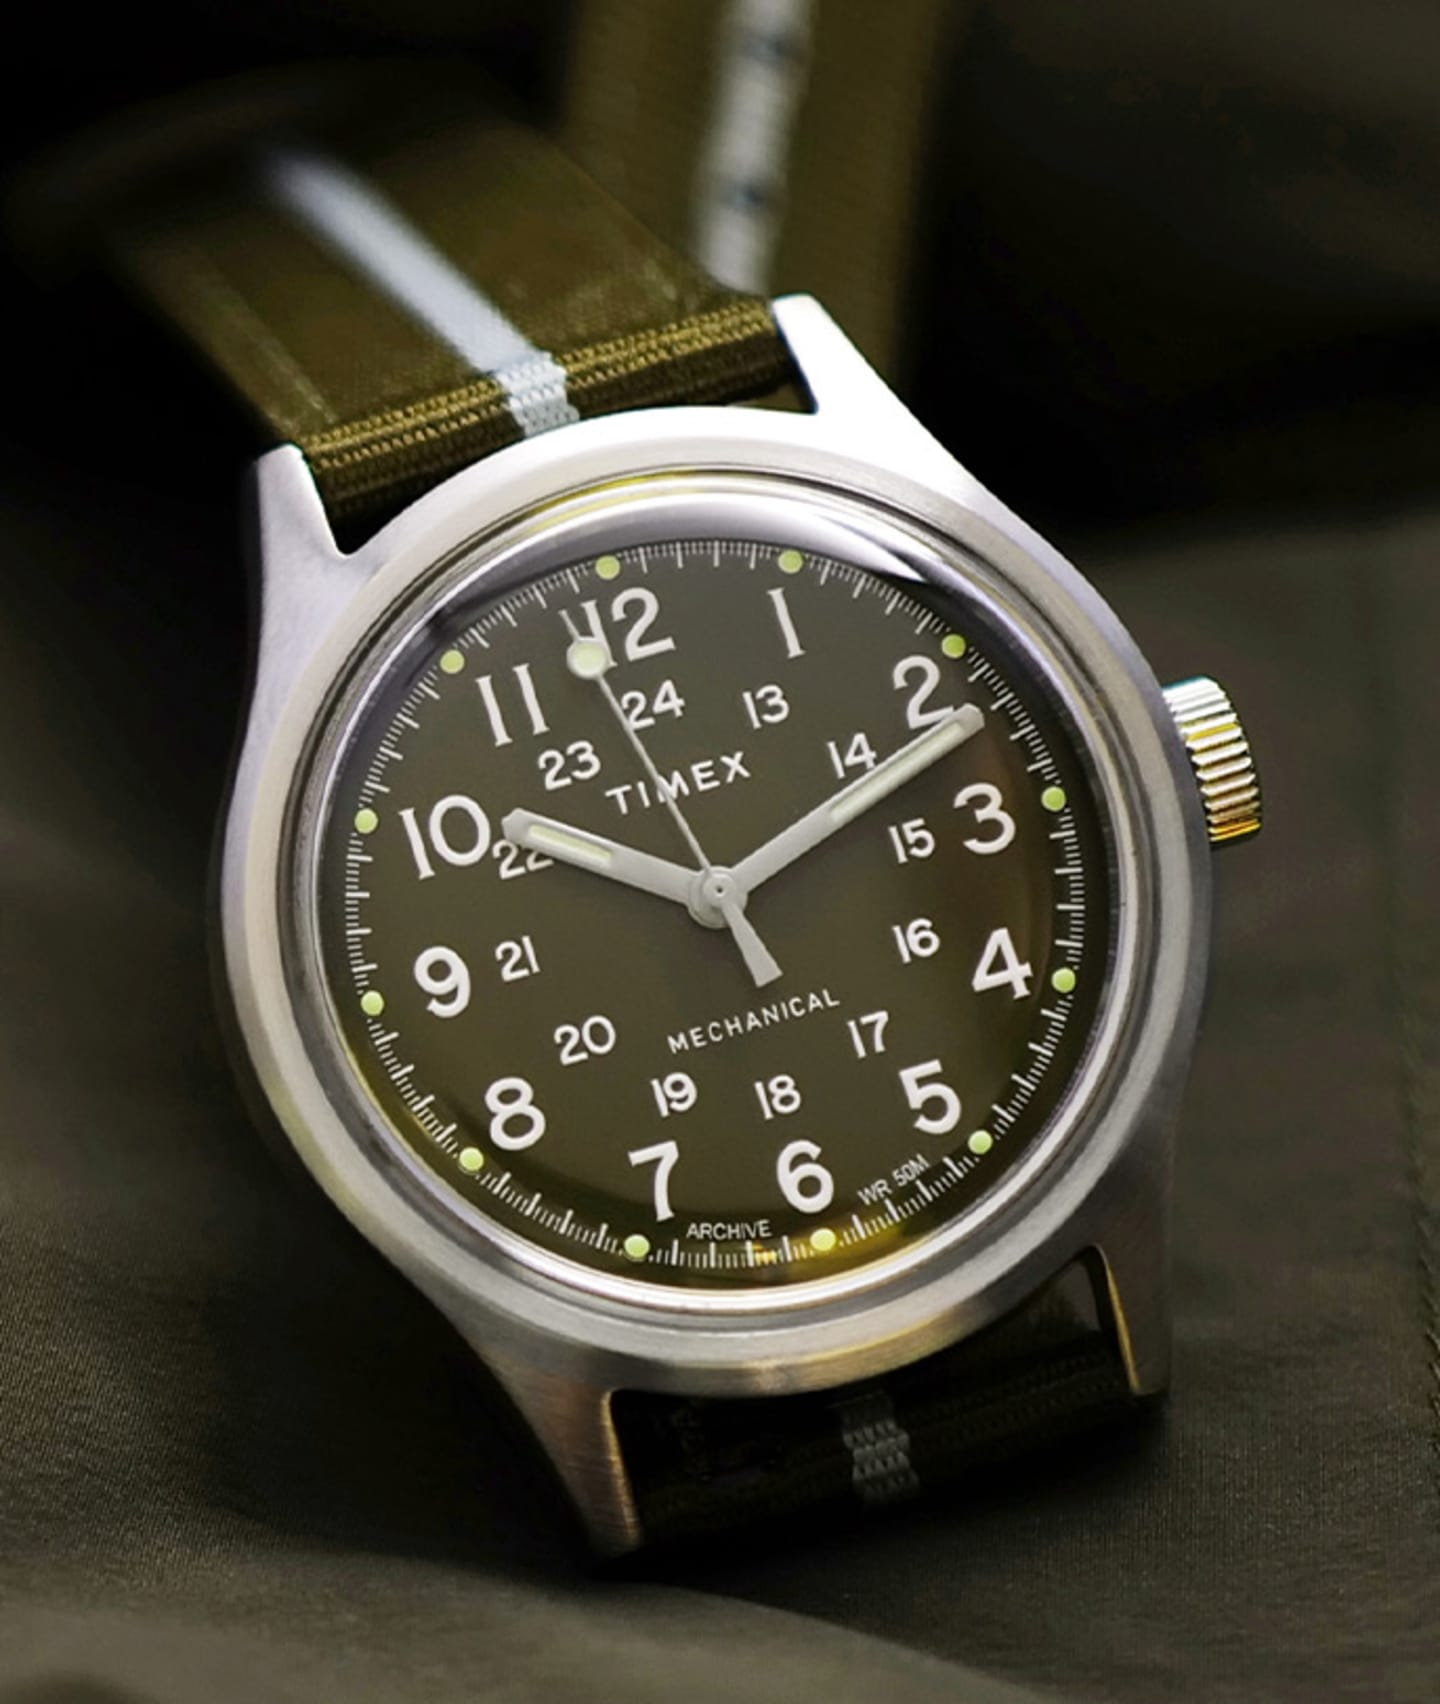 MK1 Mechanical Watch.